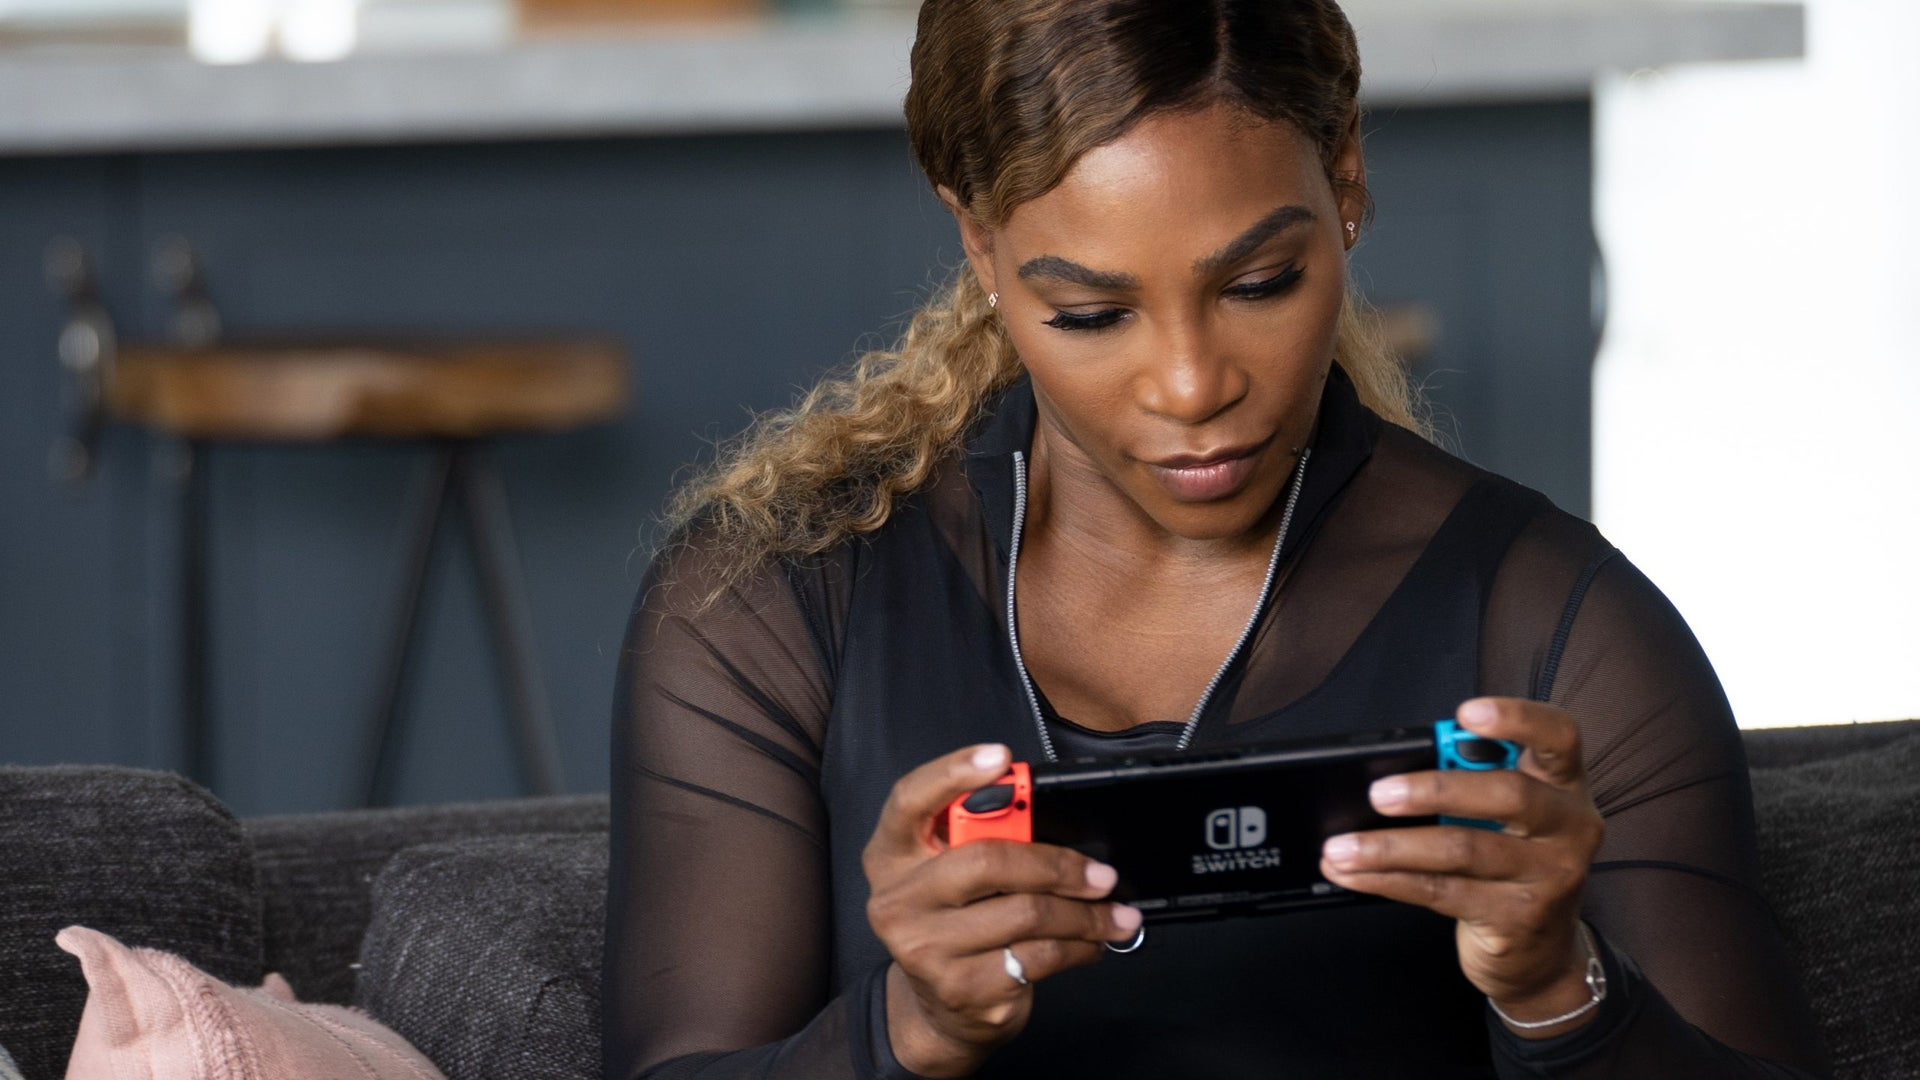 Serena Williams Shares Her Love For Gaming From Childhood To Now